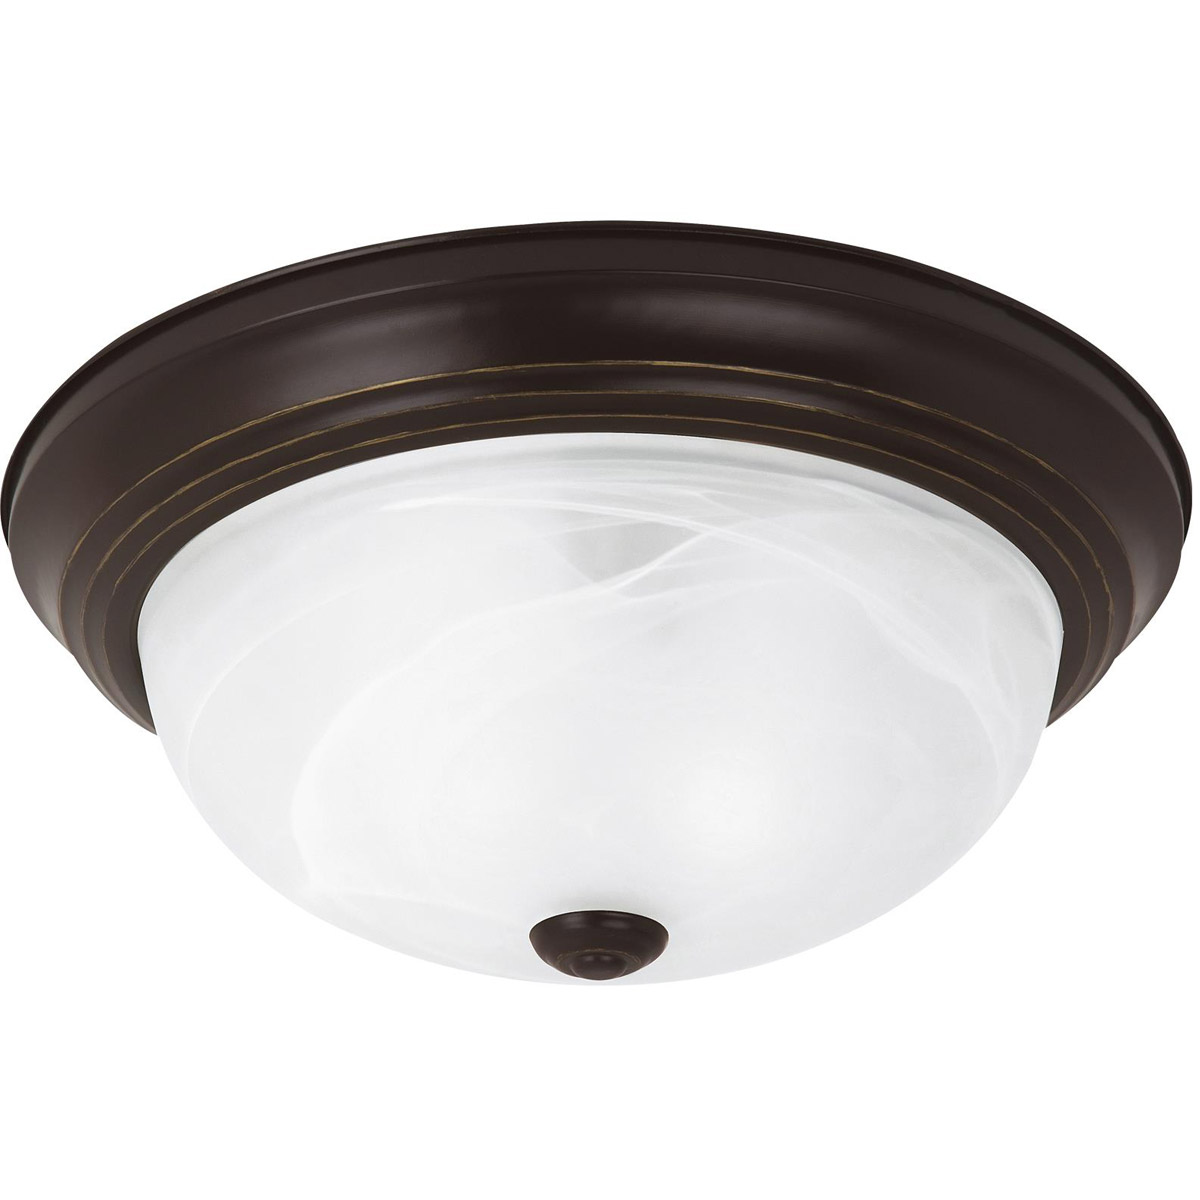 Sea Gull Lighting Windgate 1 Light Flush Mount in Heirloom Bronze 75940-782 photo